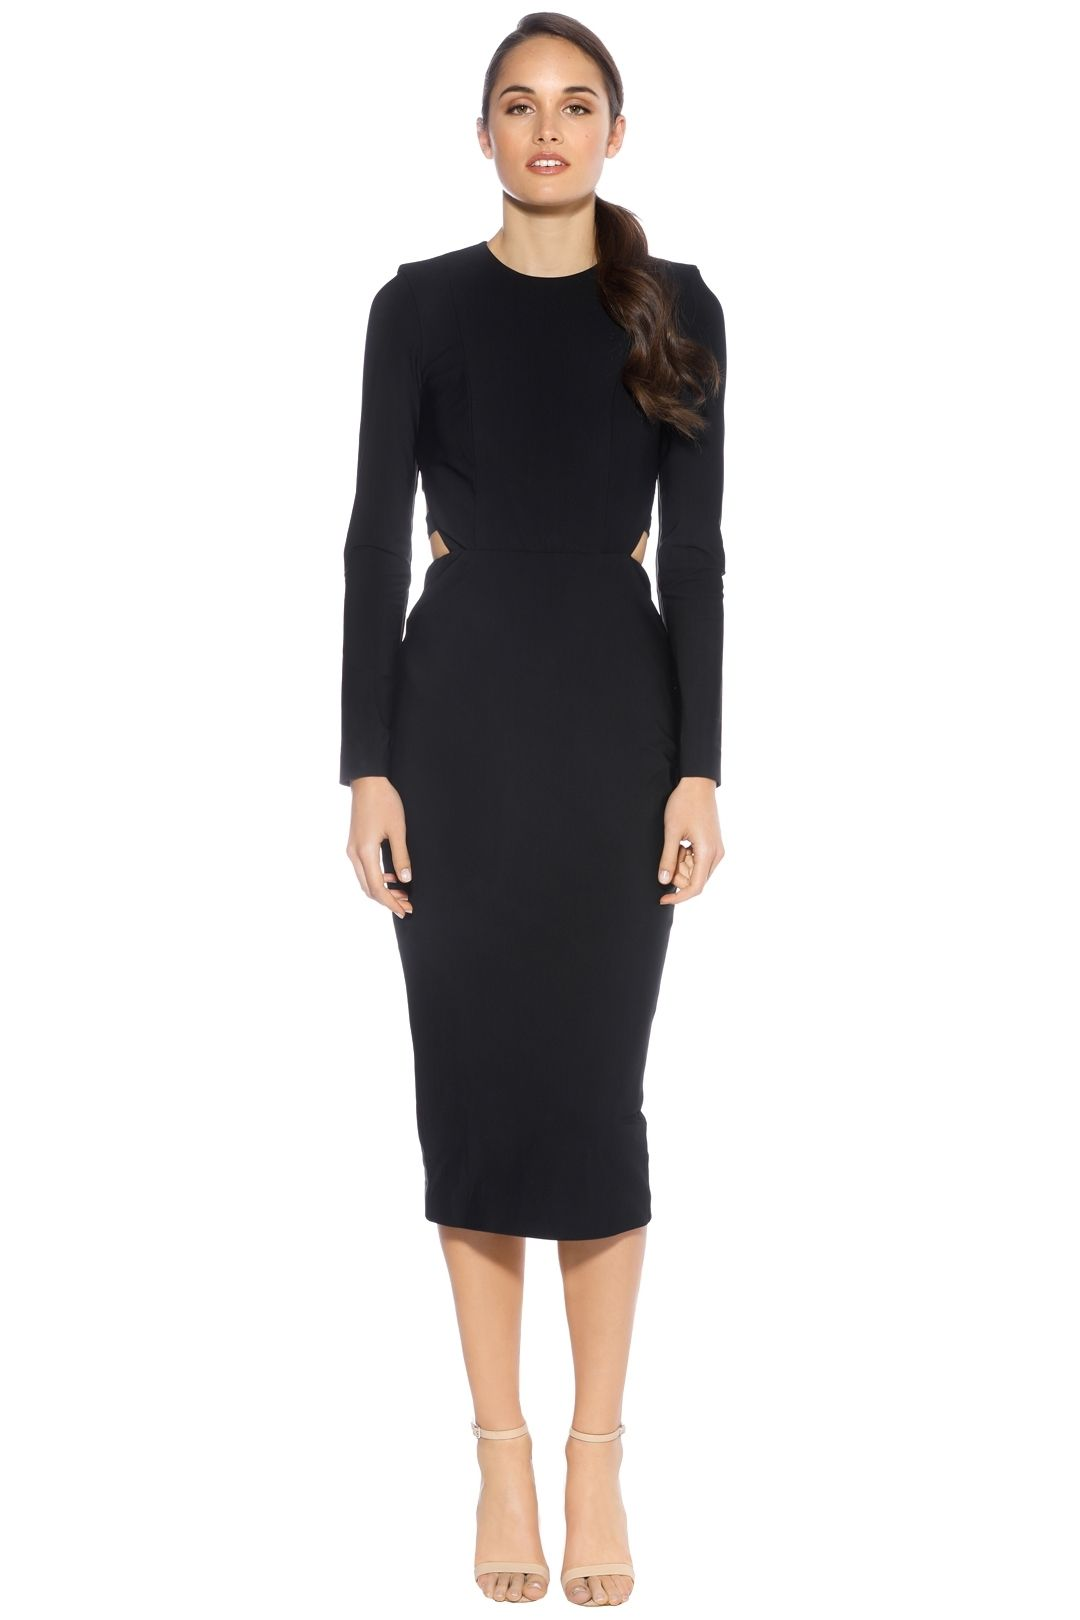 Misha Collection - Demetria Dress - Navy - Front